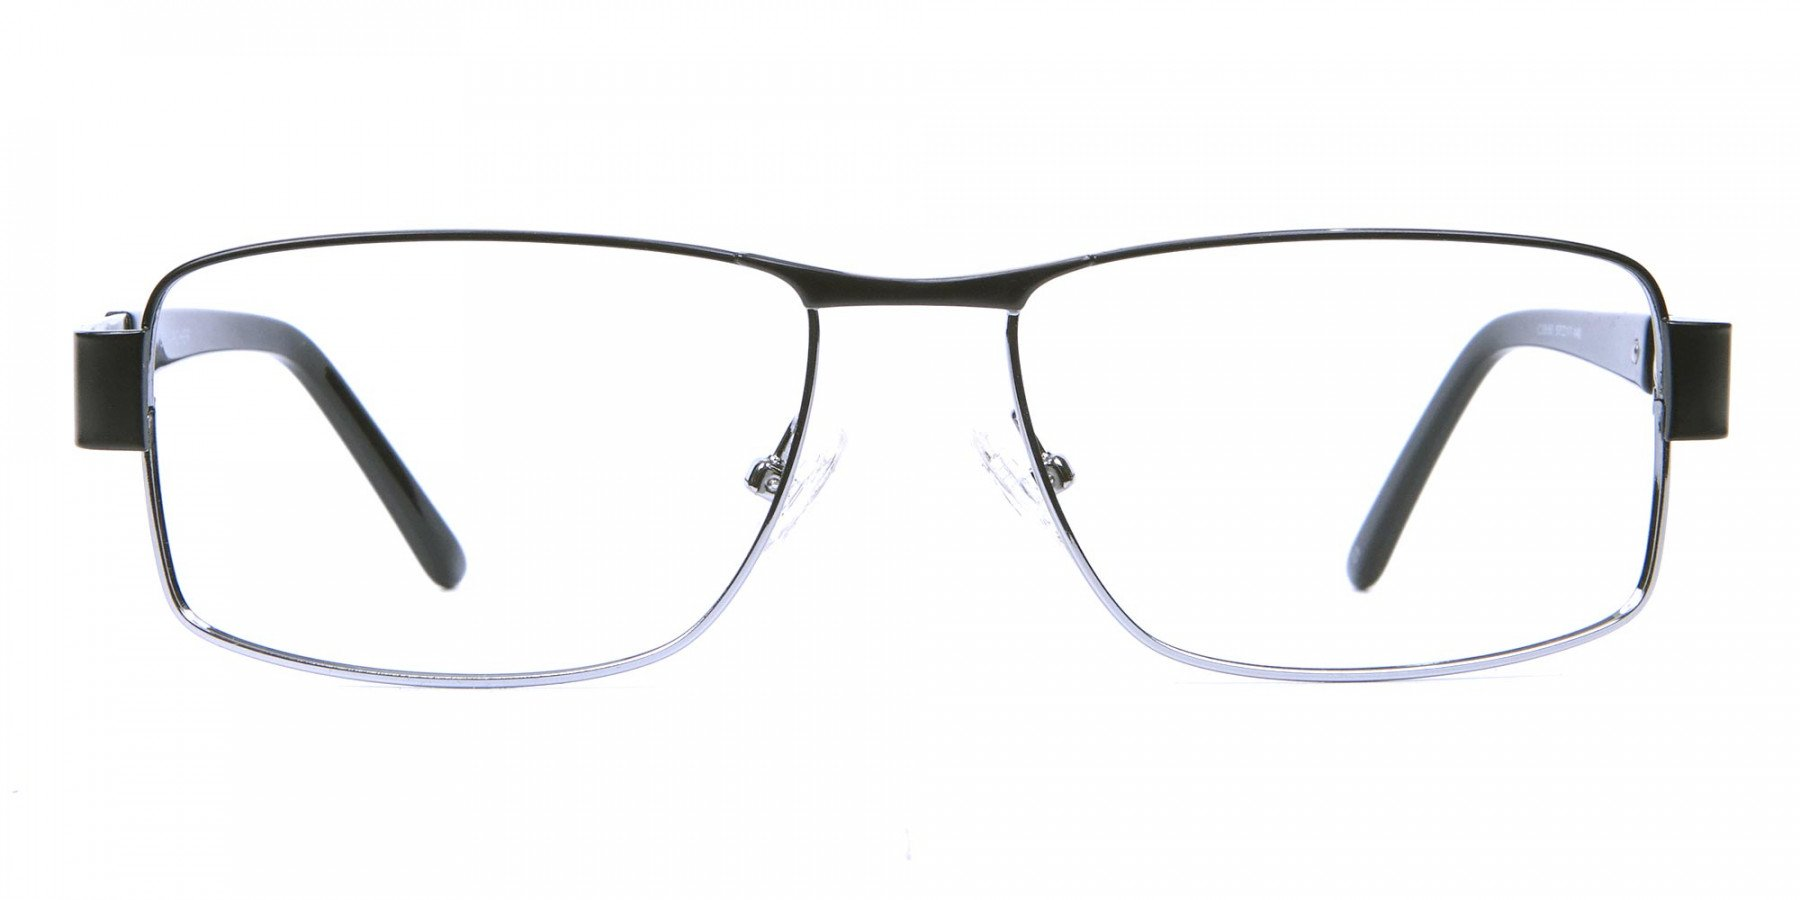 Rectangular Glasses in Black & Silver -1